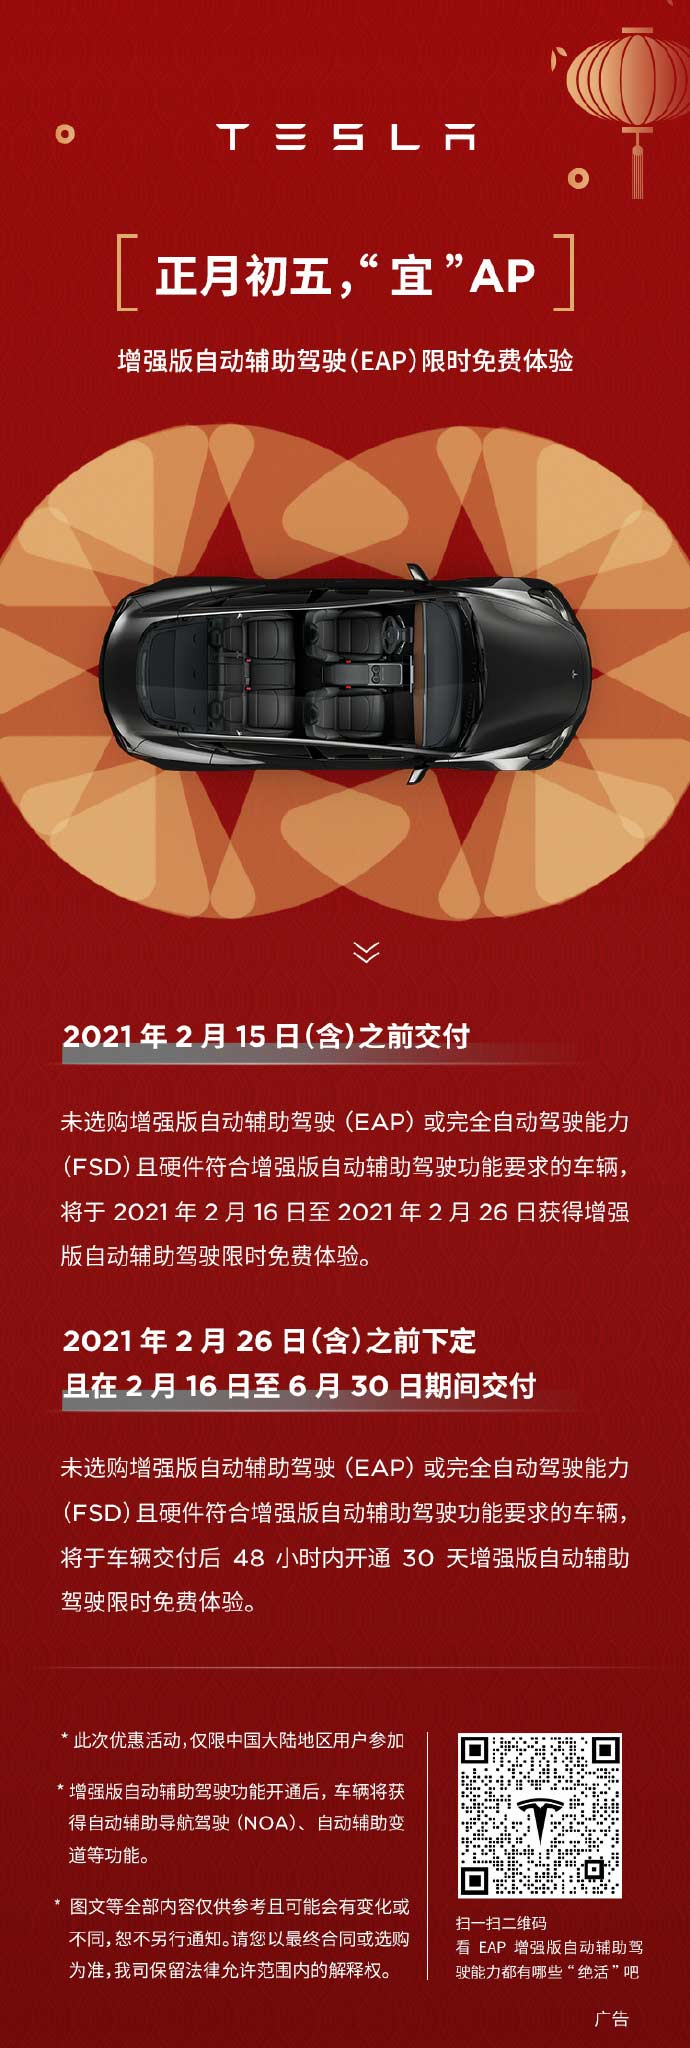 Tesla allows owners in China to try EAP features for free for limited time-CnEVPost